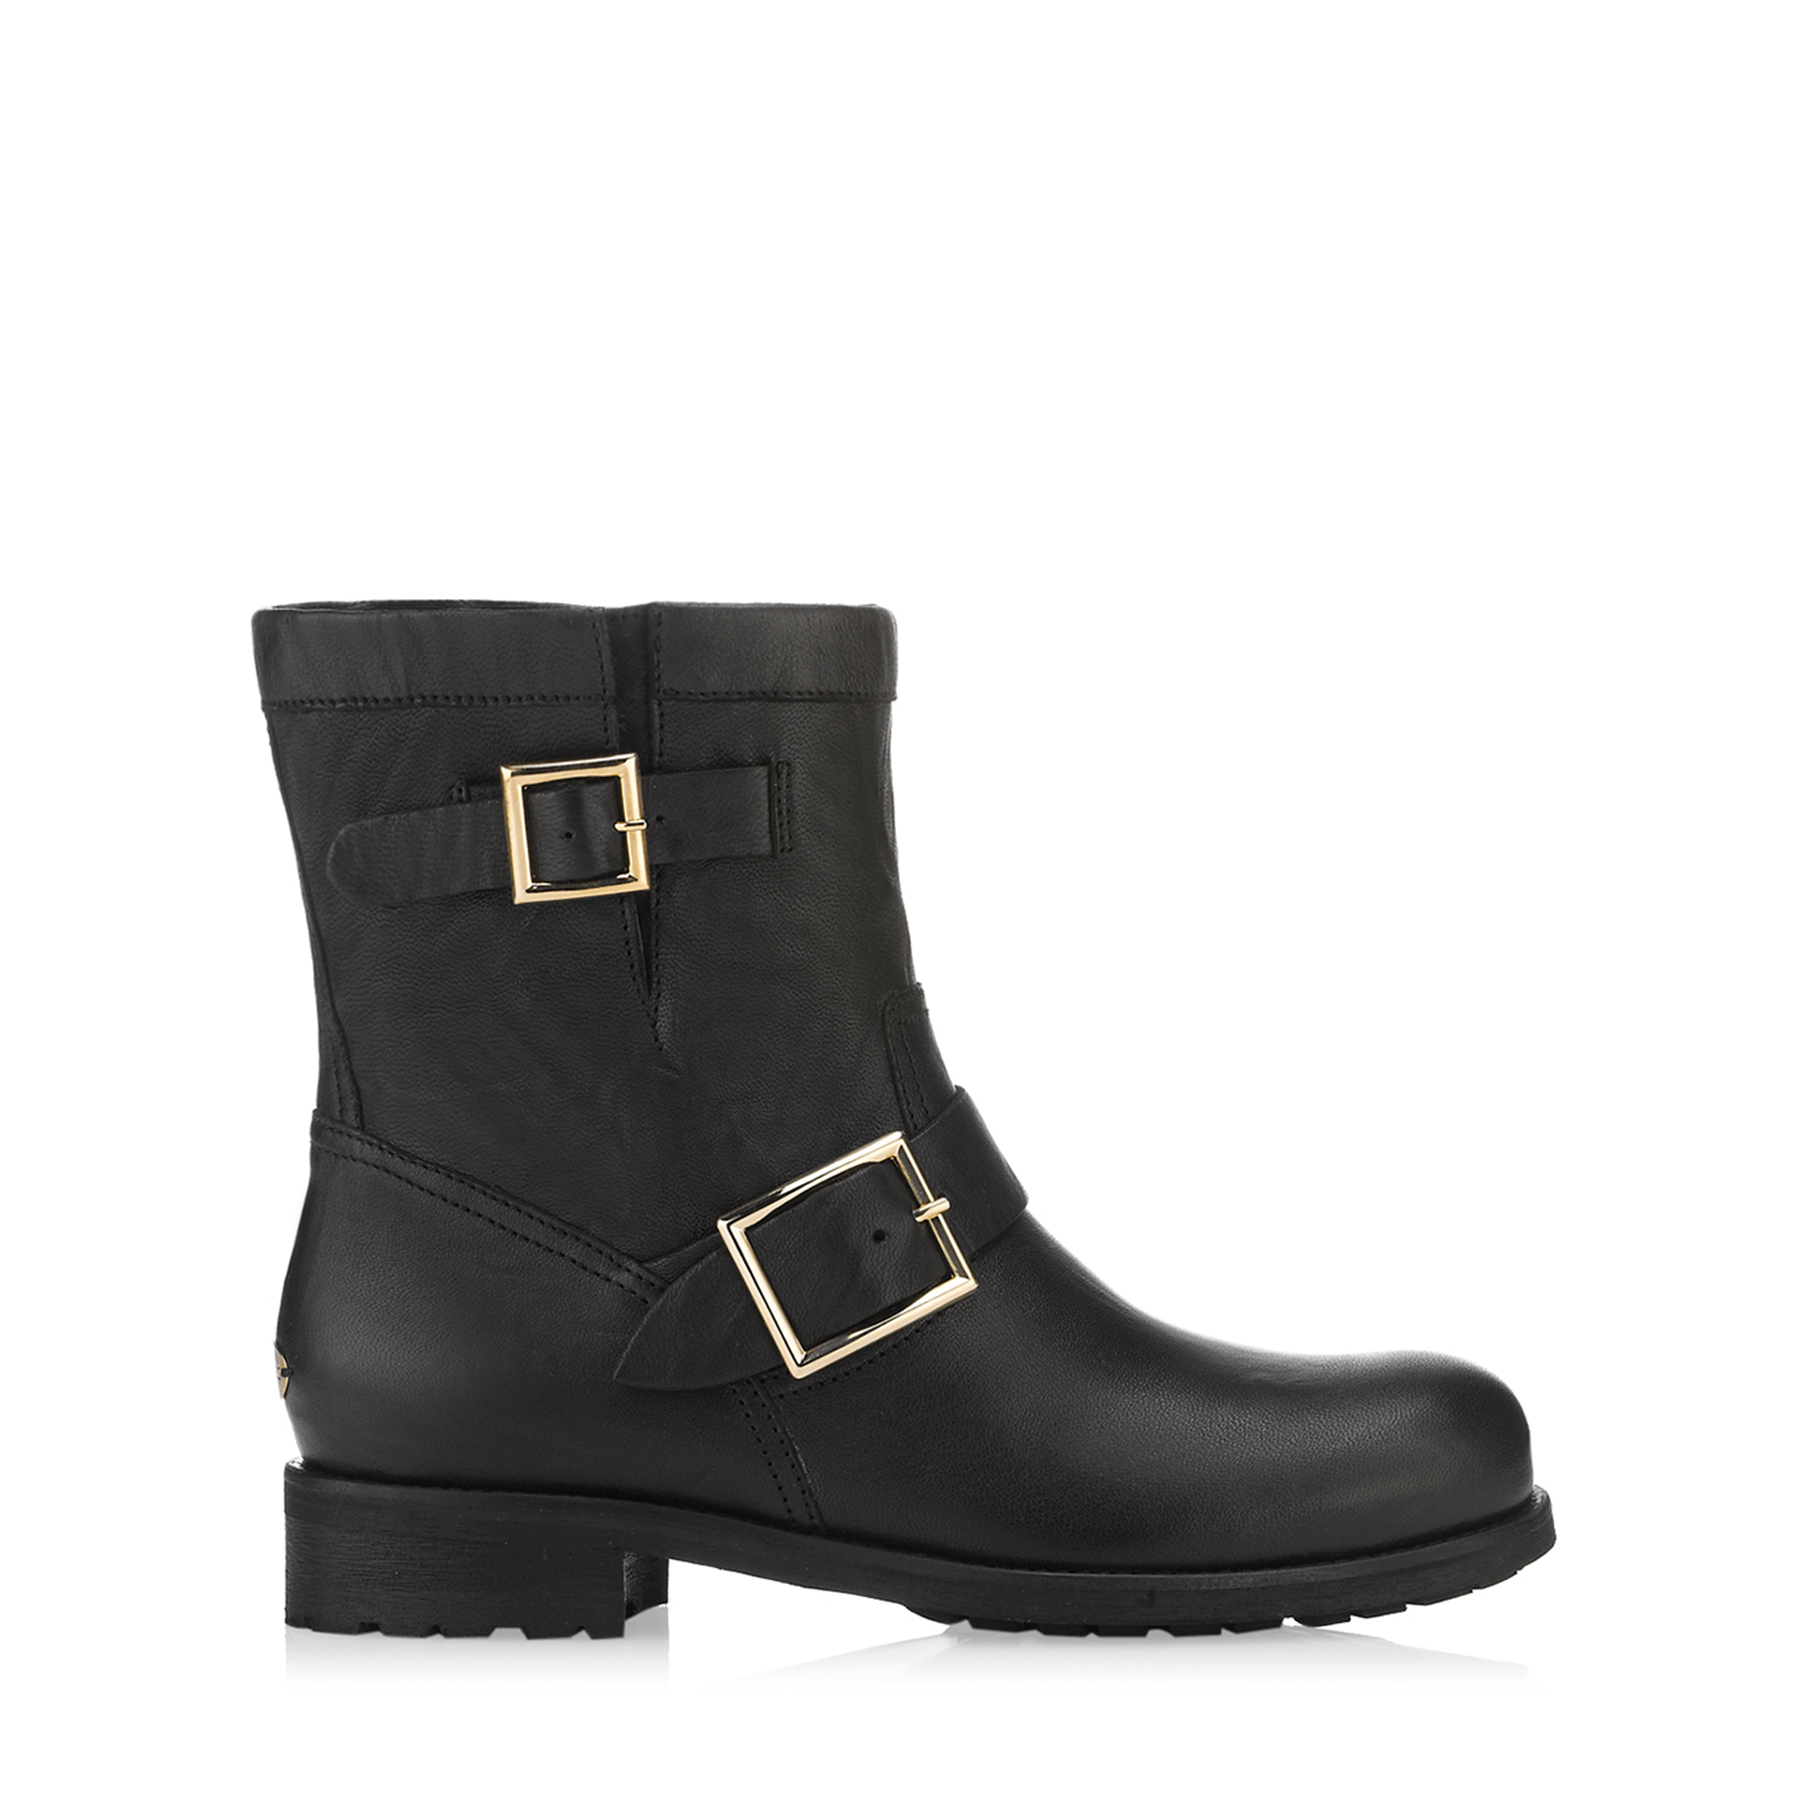 Jimmy Choo London boots largest supplier online popular sale online latest collections sale online 5T2FY2GY